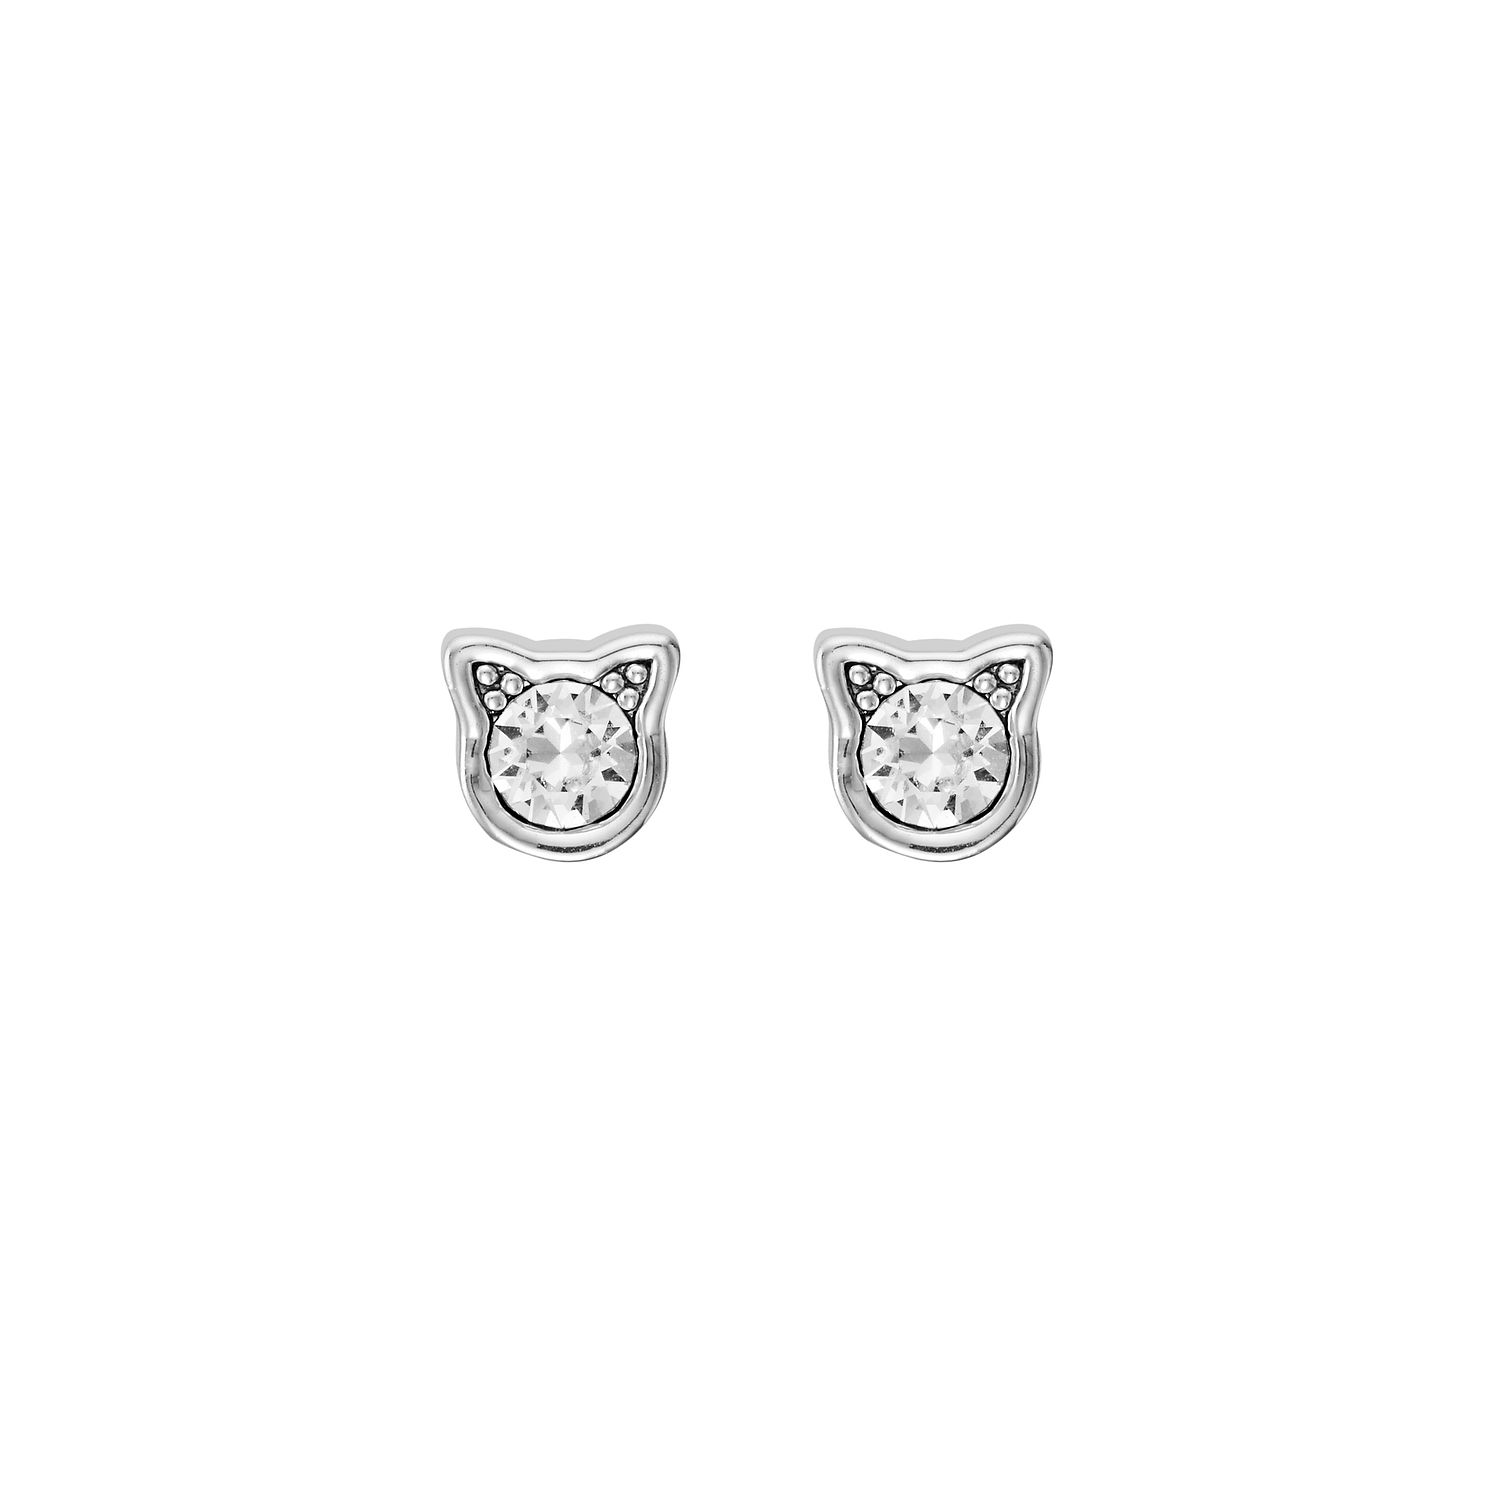 Karl Lagerfeld Rhodium Plated Mini Choupette Stud Earrings - Product number 5907292